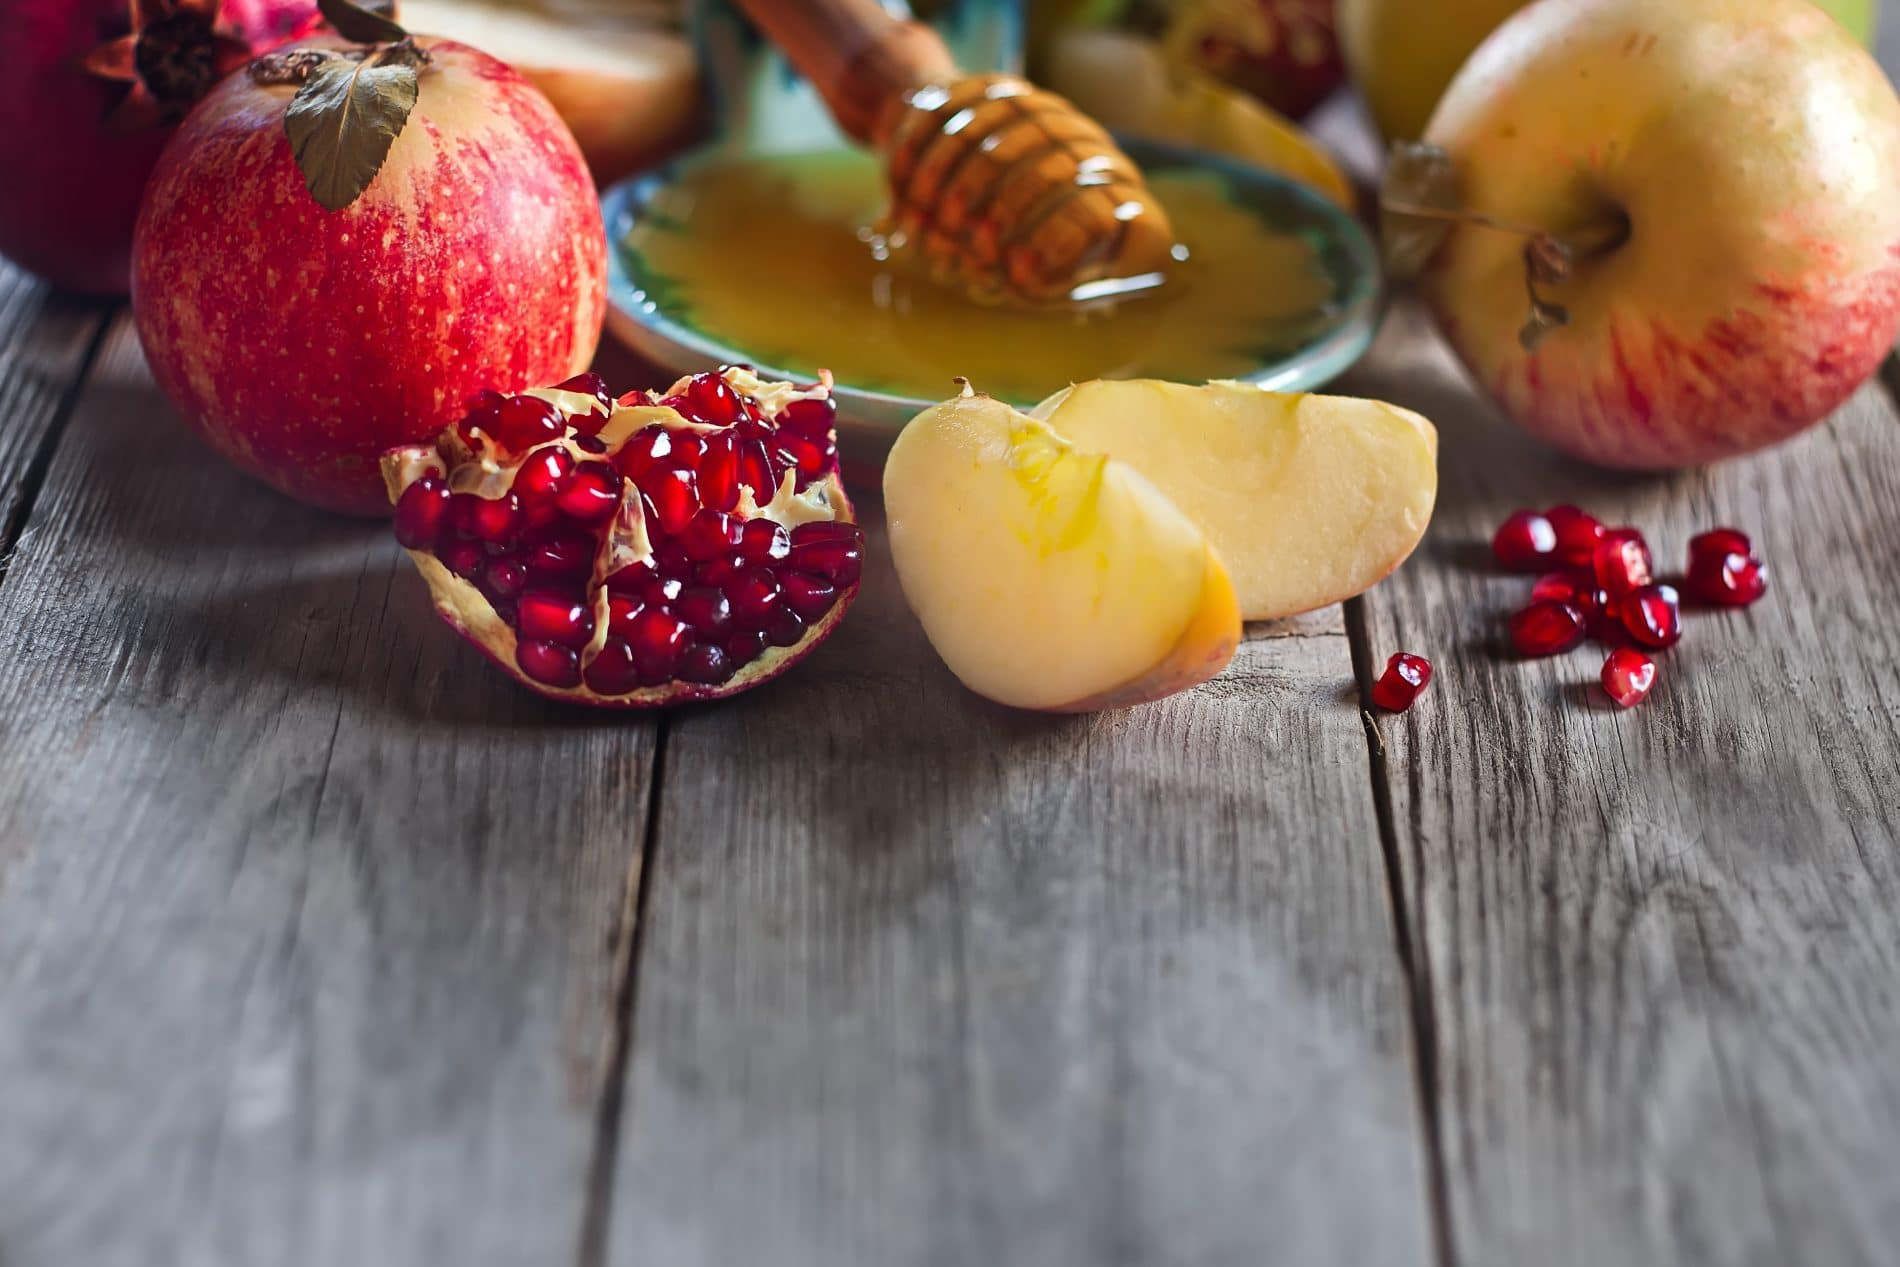 Pomegranate, apple and honey, traditional food of jewish New Year celebration, Rosh Hashana. Selective focus. Copyspace background. Rosh Hashanah holiday food